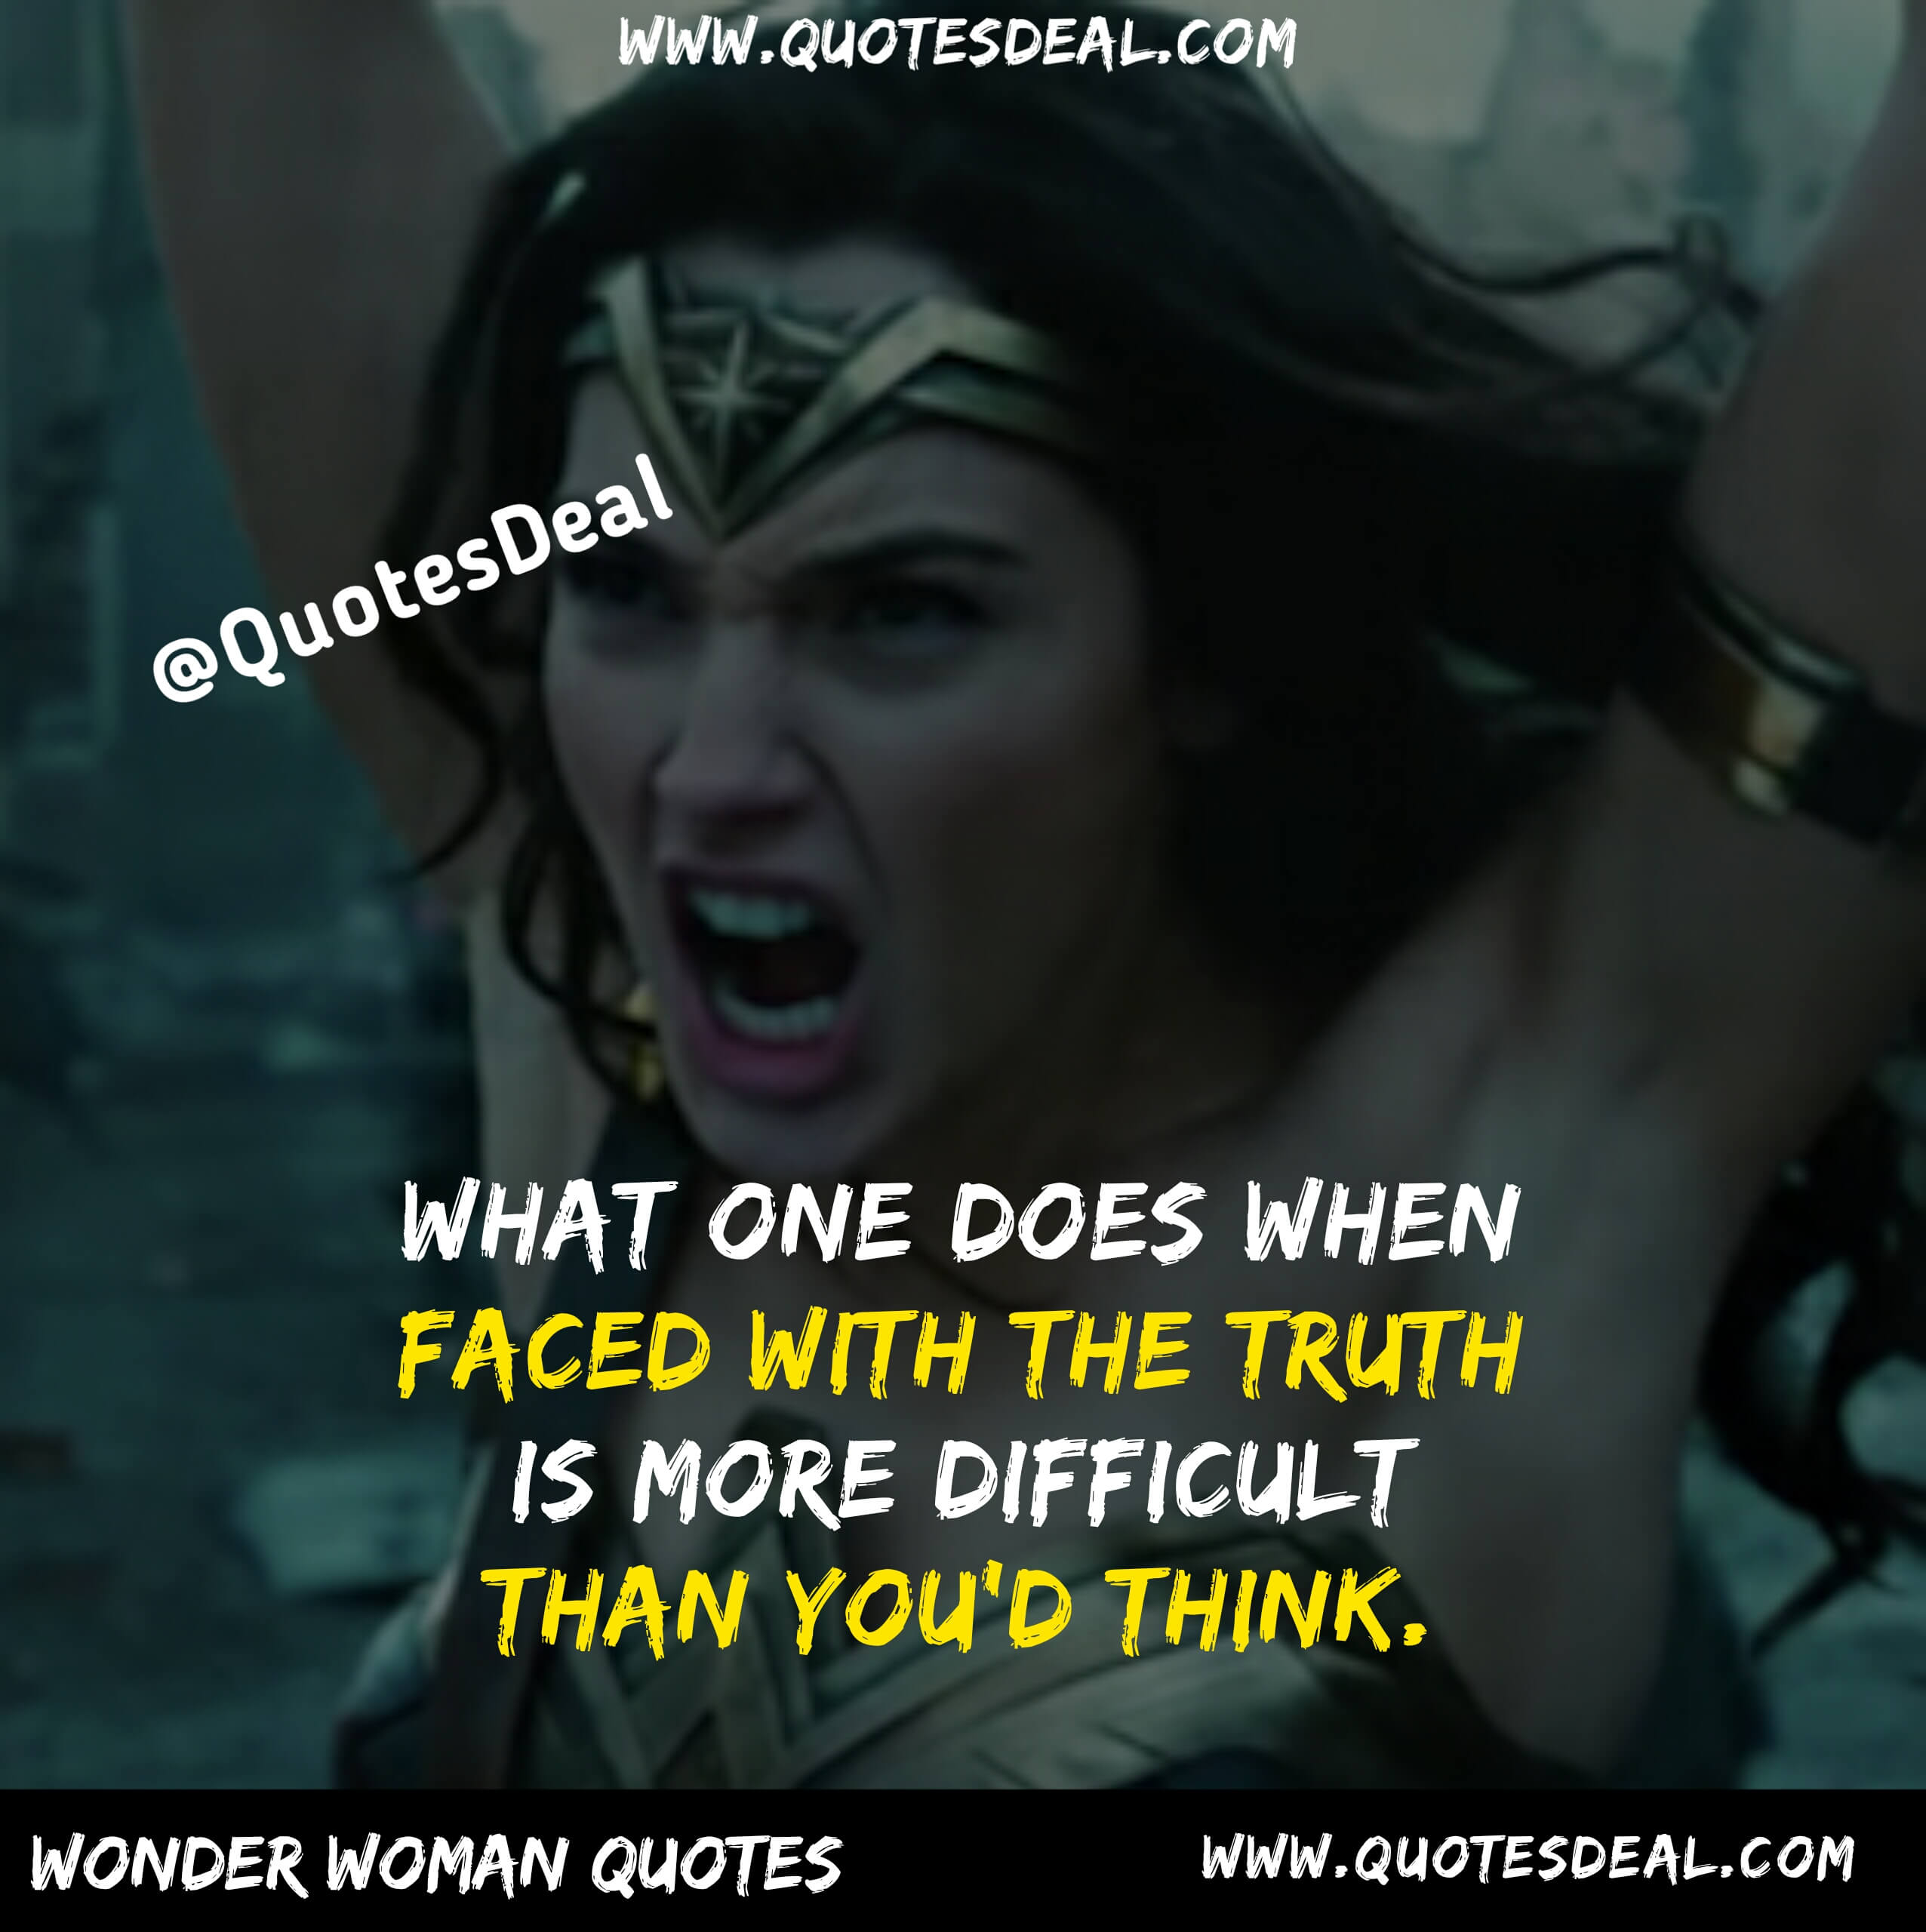 truth is more difficult